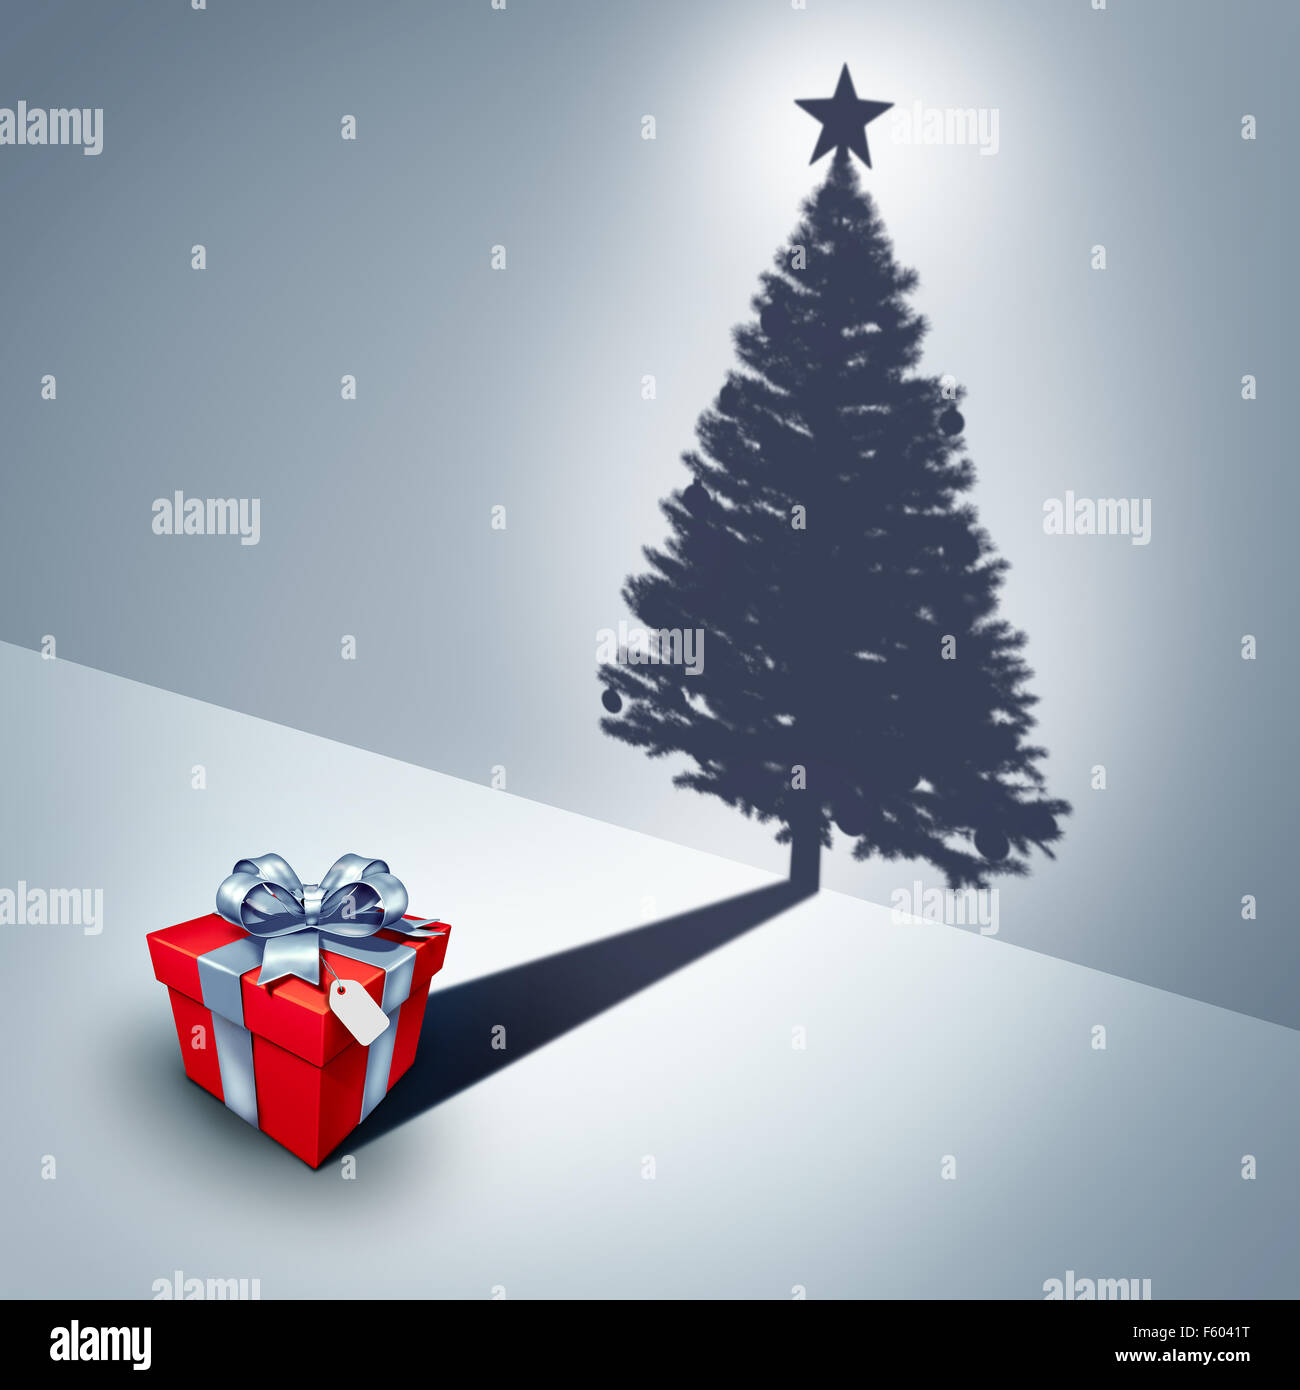 Holiday present dream concept as a gift casting a shadow shaped as a decorated christmas tree as a surreal winter - Stock Image